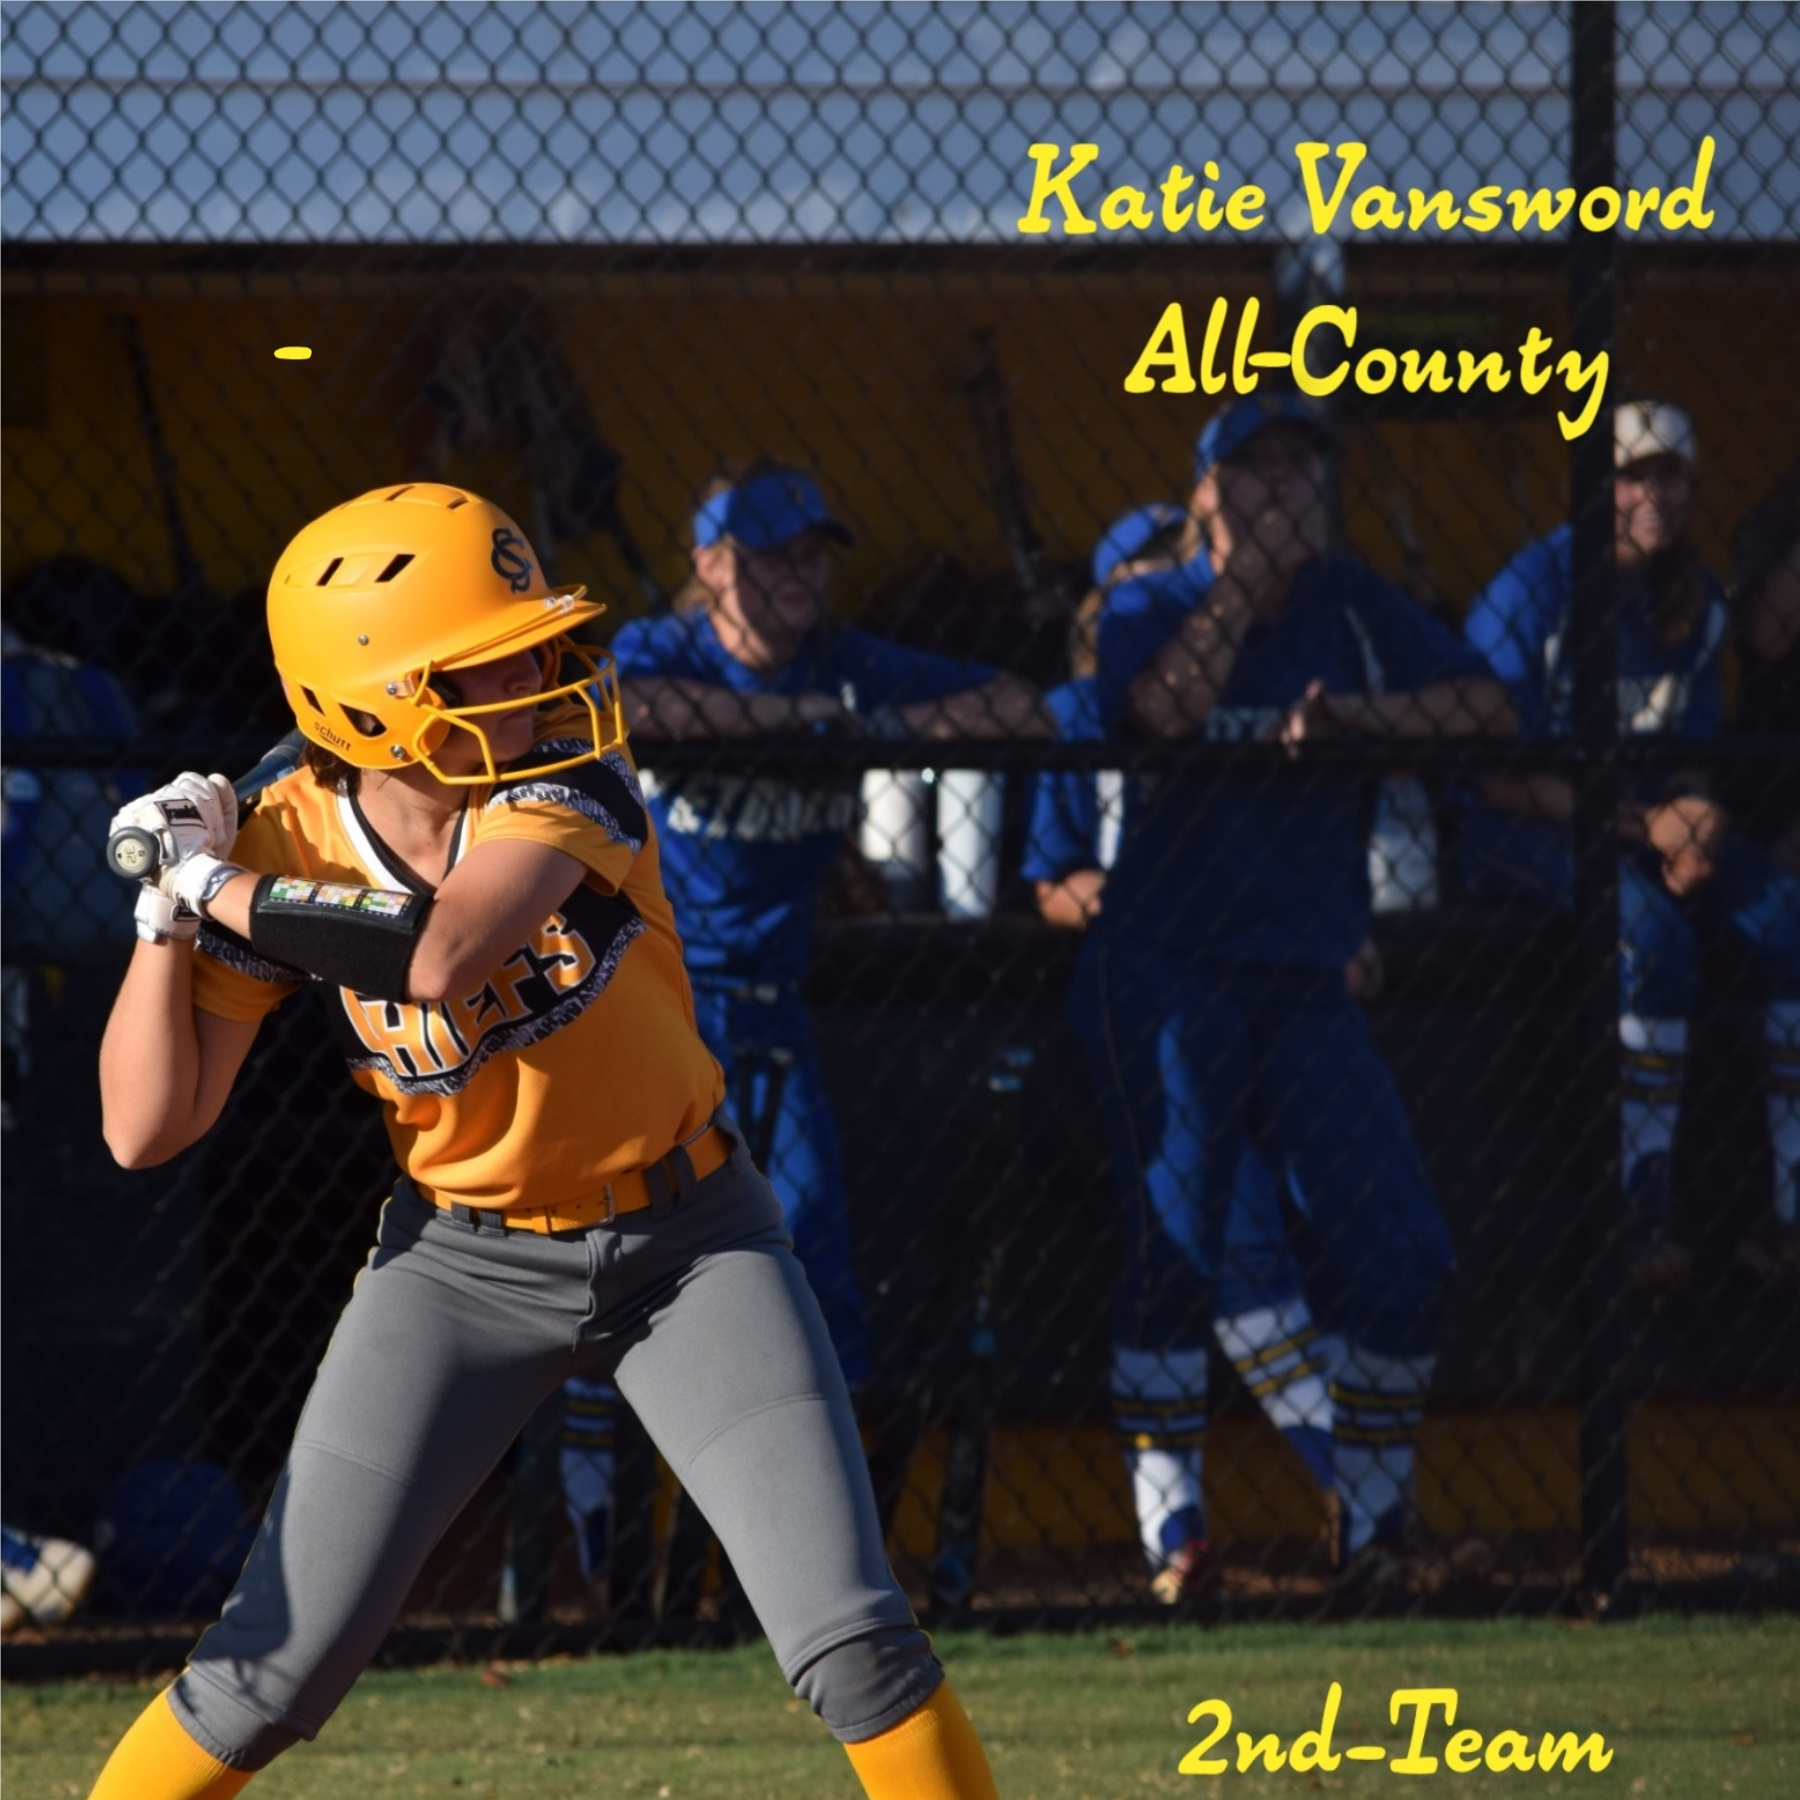 Katie Vansword All County